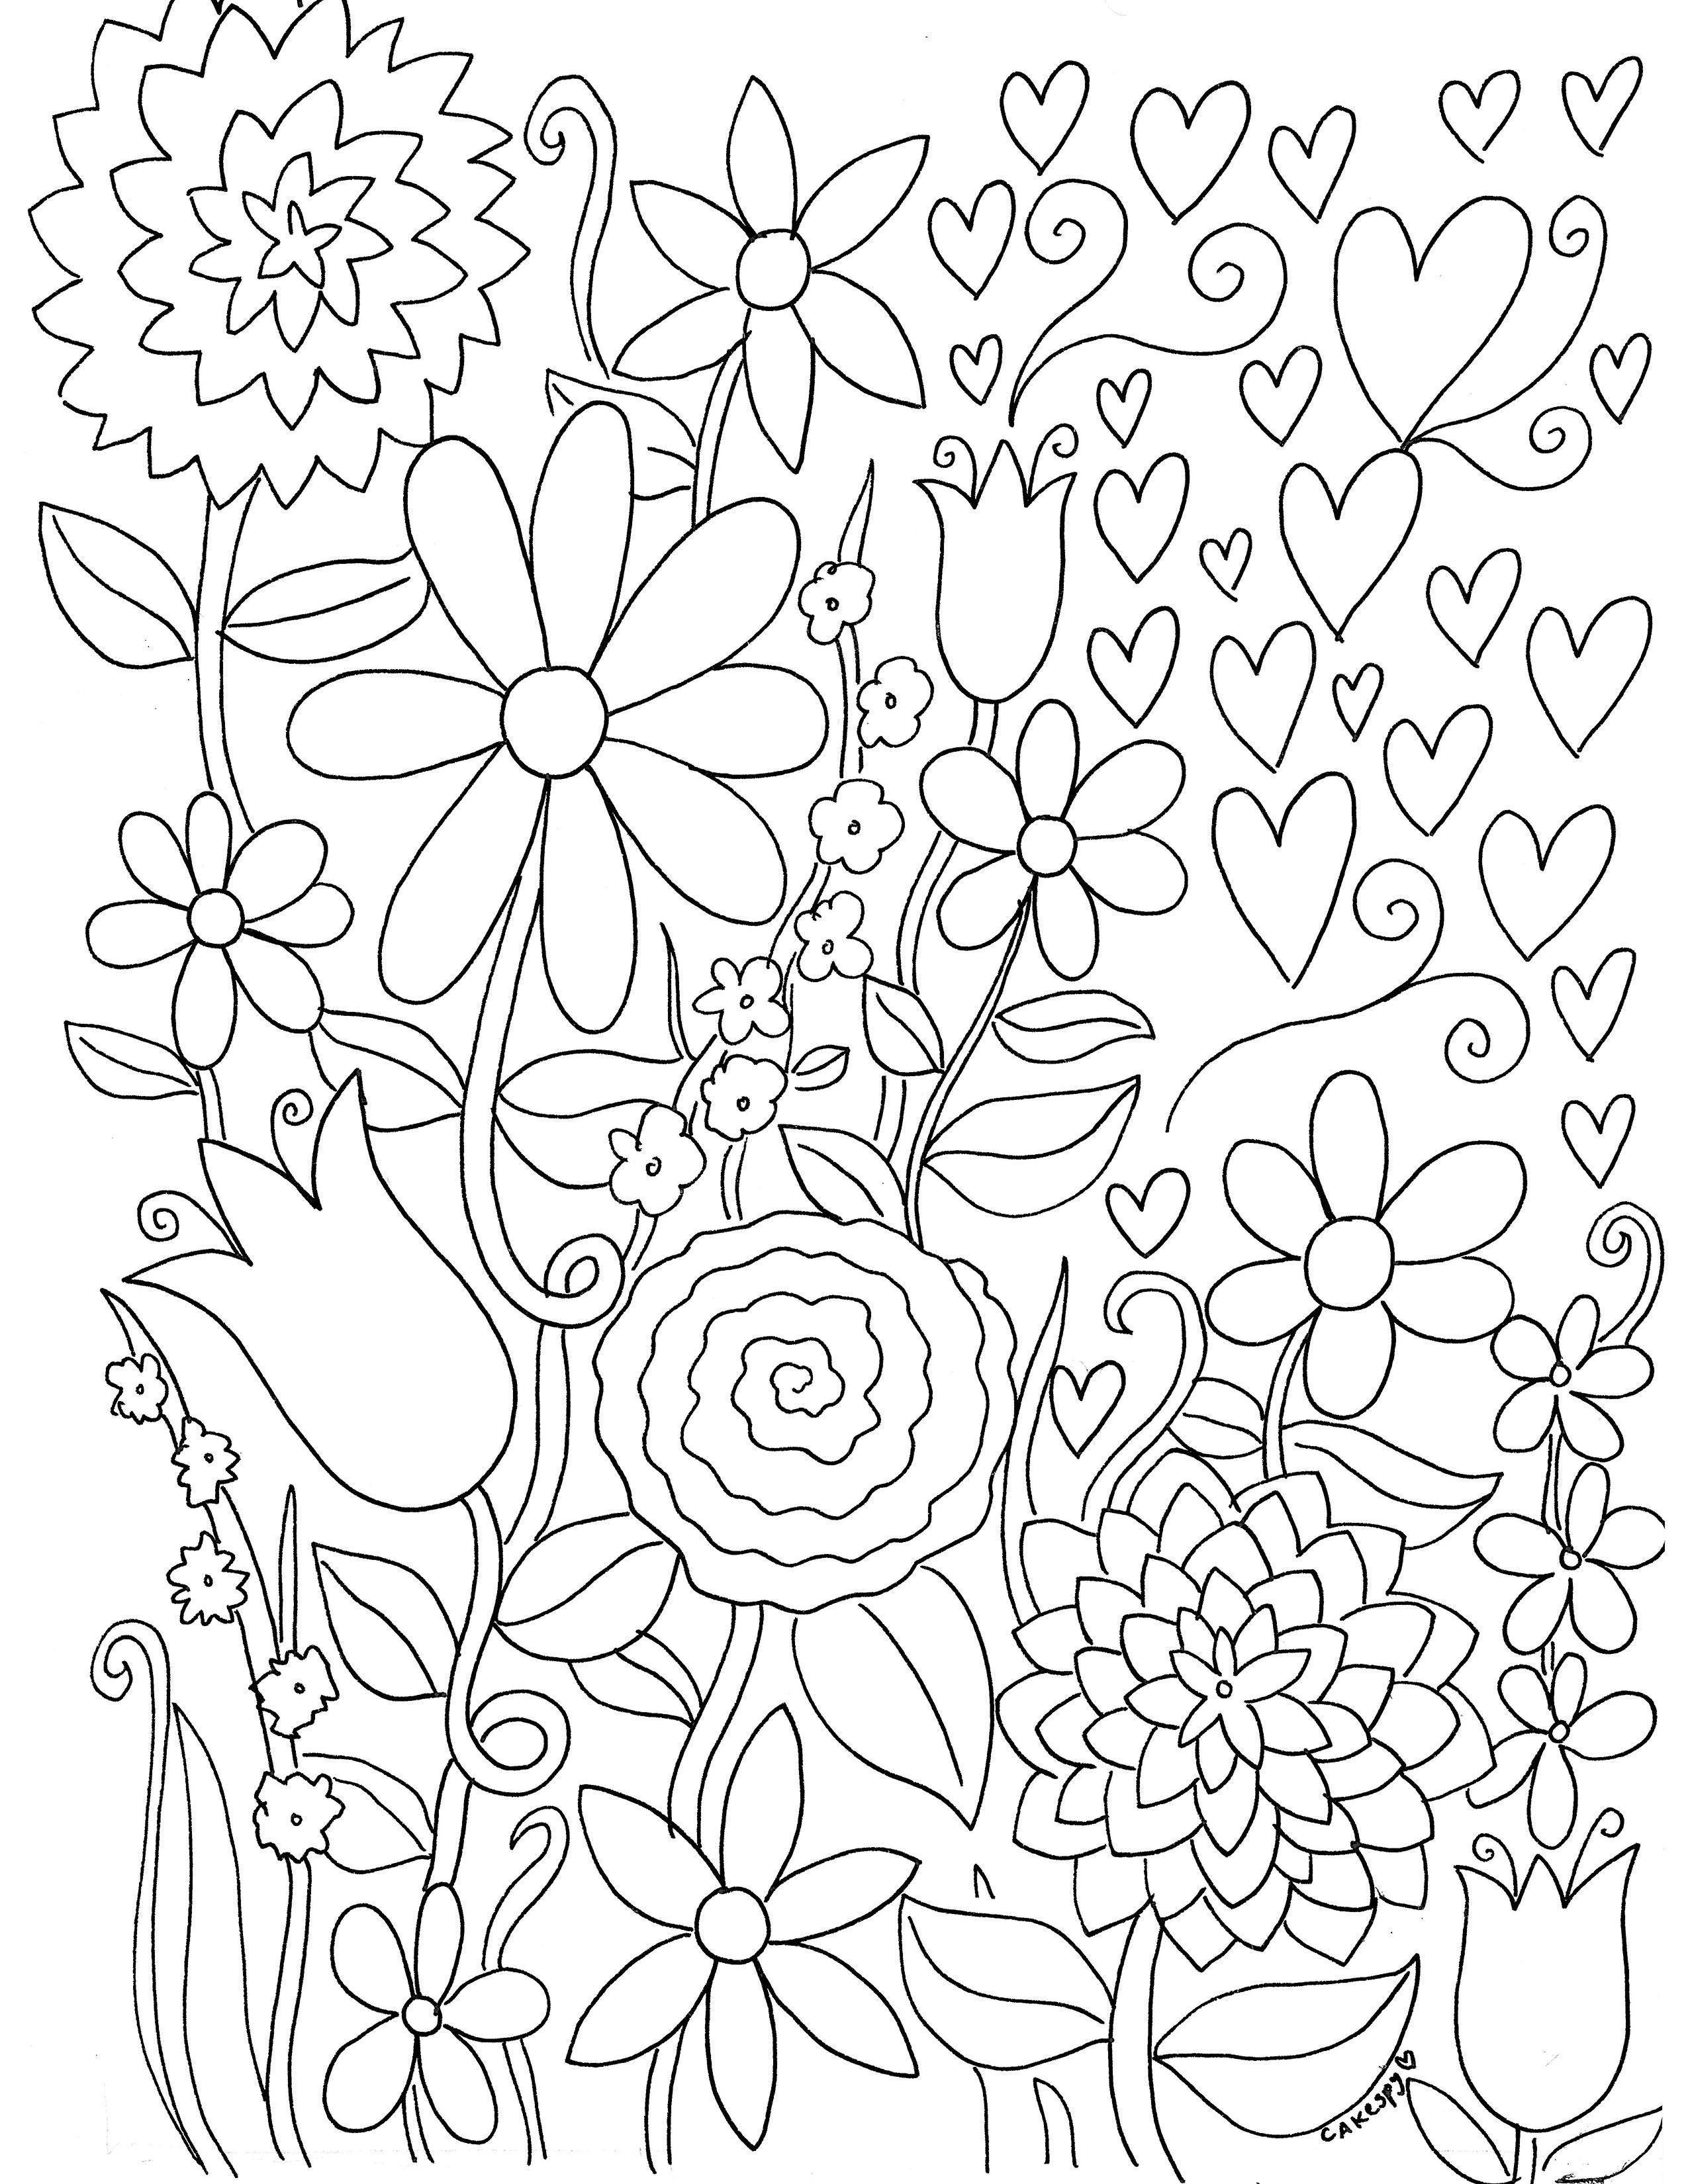 printable pictures to paint for kids monkeys to download for free monkeys kids coloring pages for printable paint to pictures kids